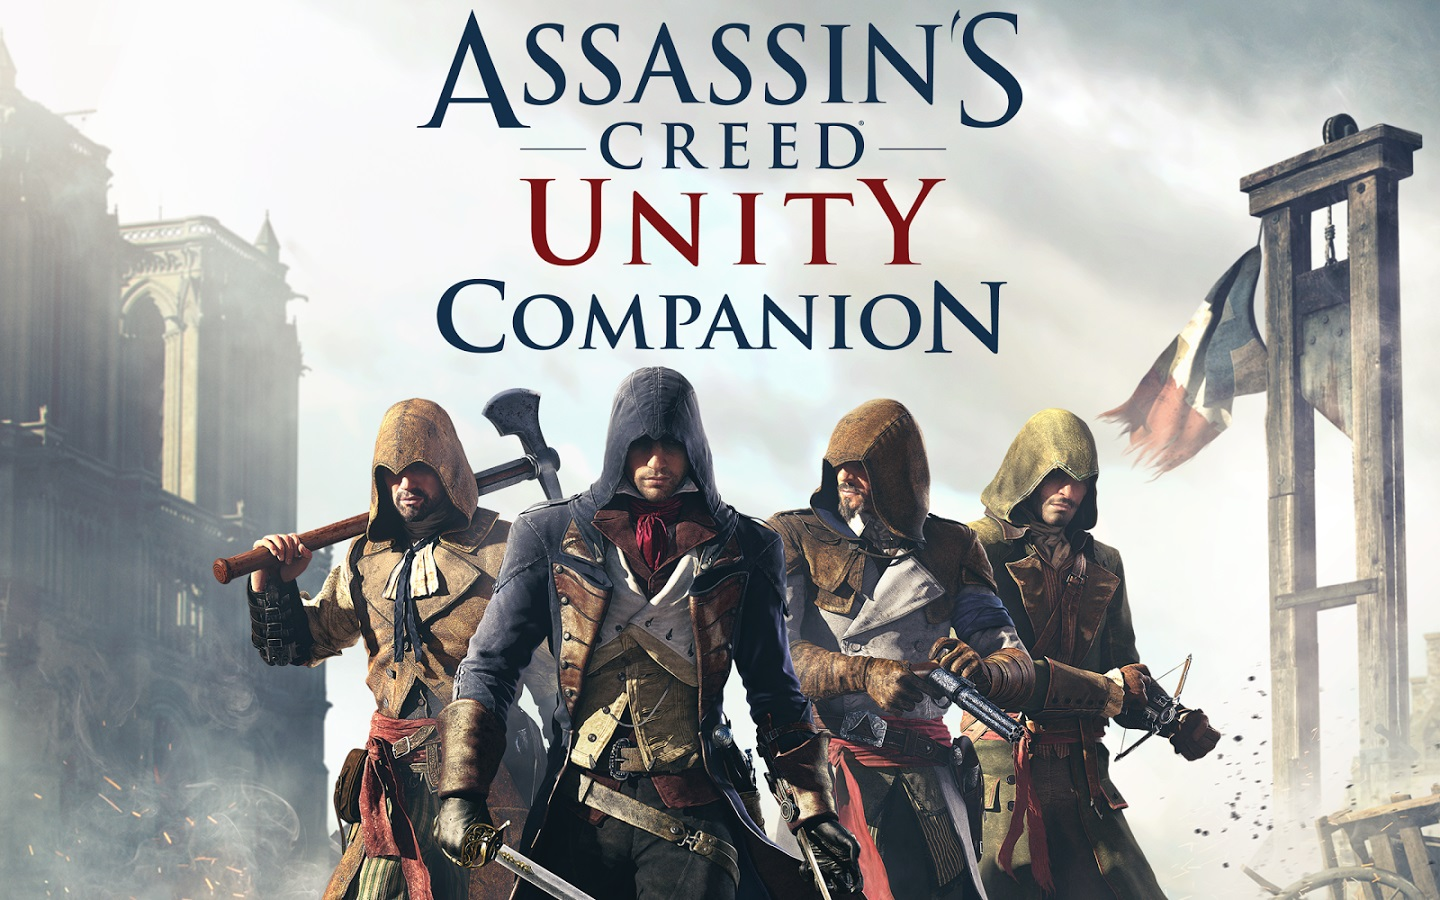 Android assassin's creed games iOS Spiele ubisoft